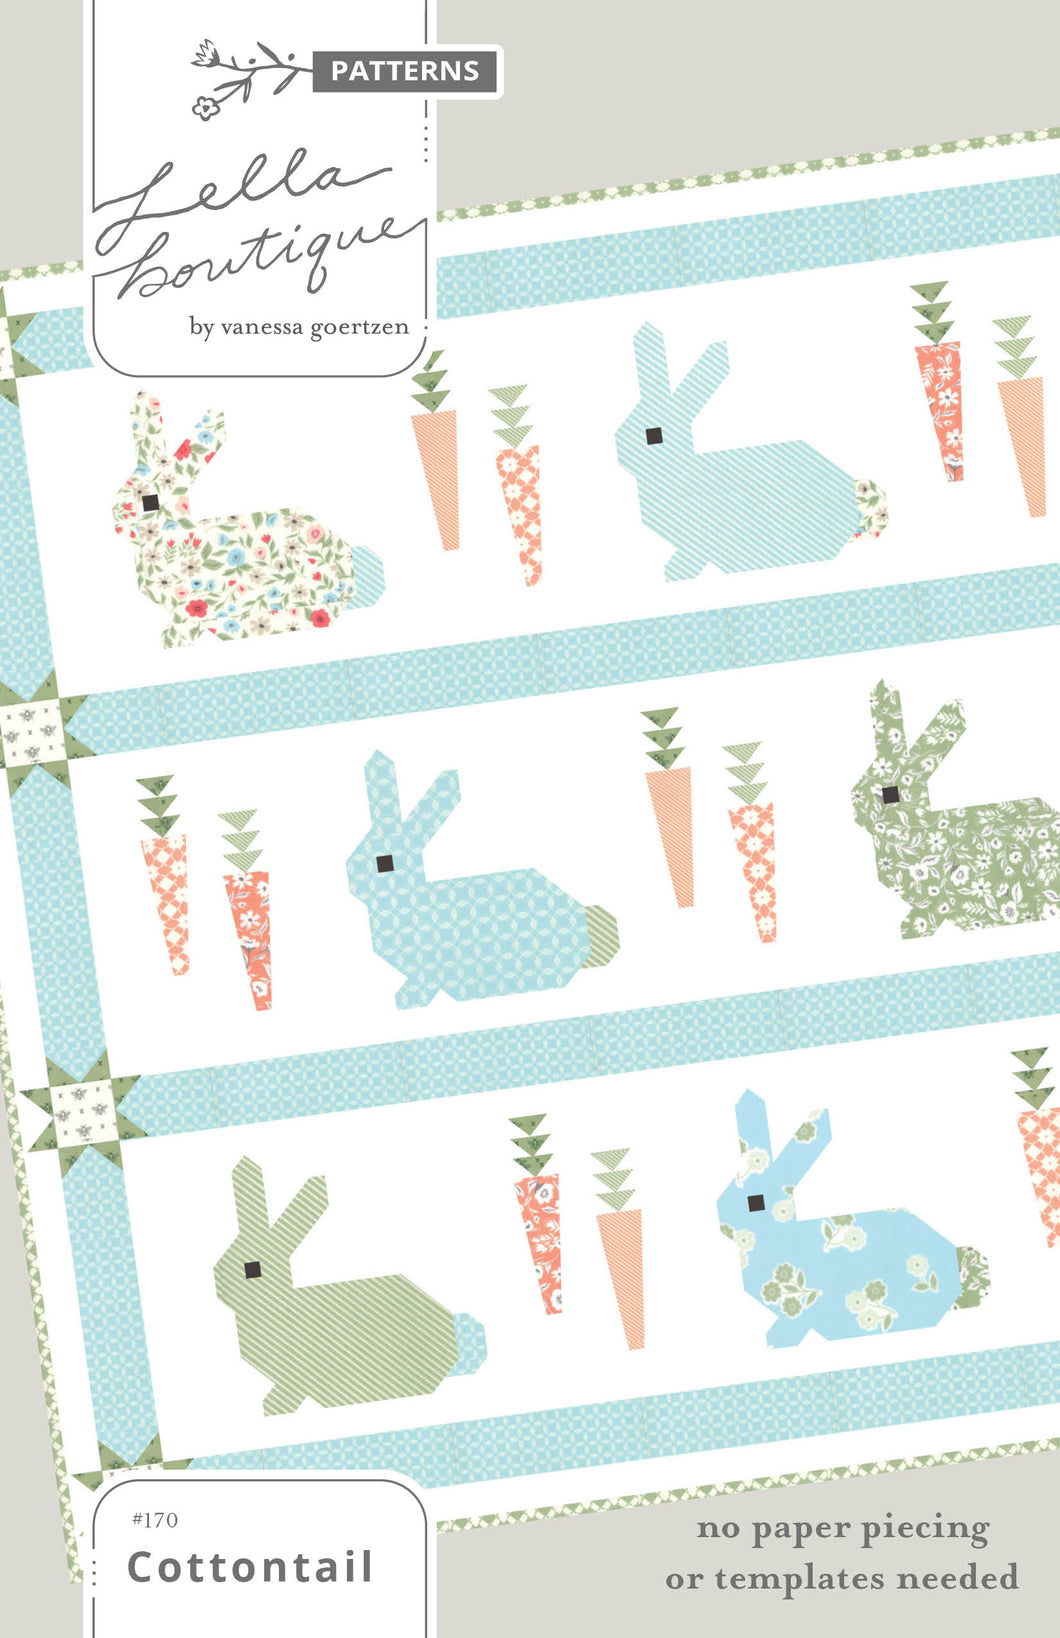 #170 Cottontail - PDF Pattern